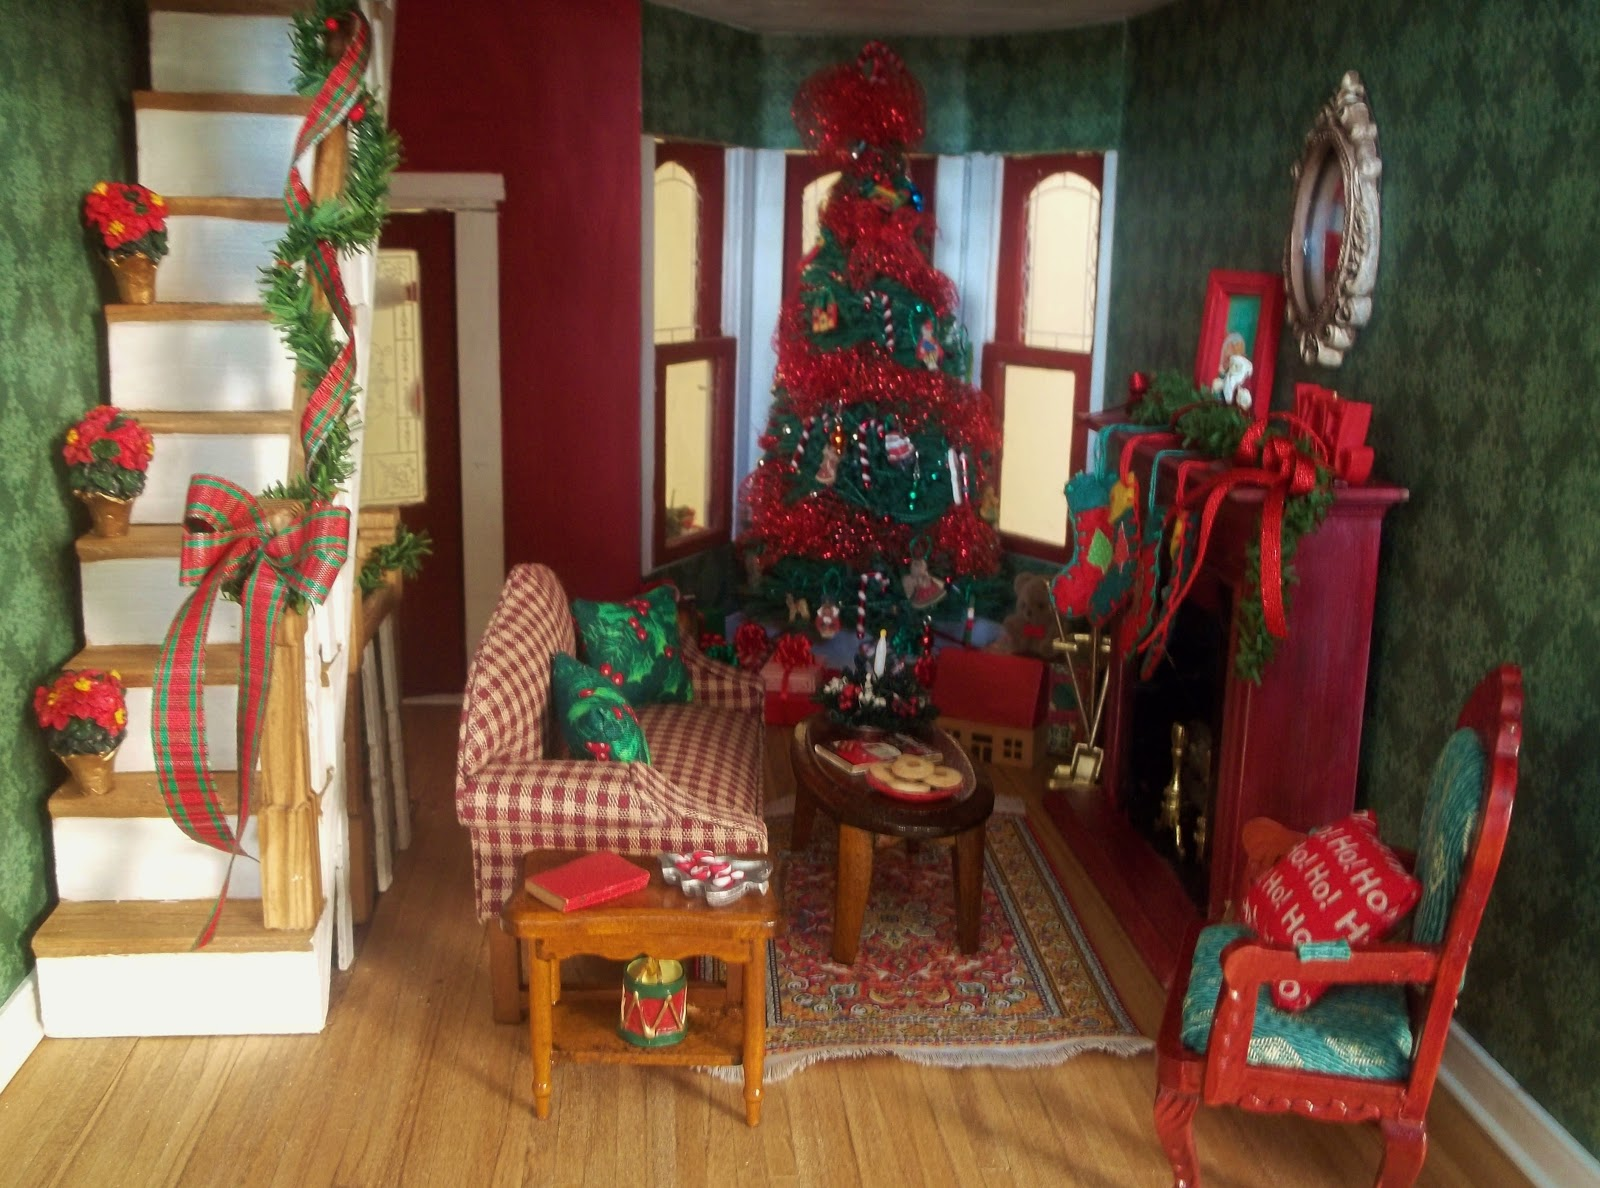 House Gingerbread Things Pic